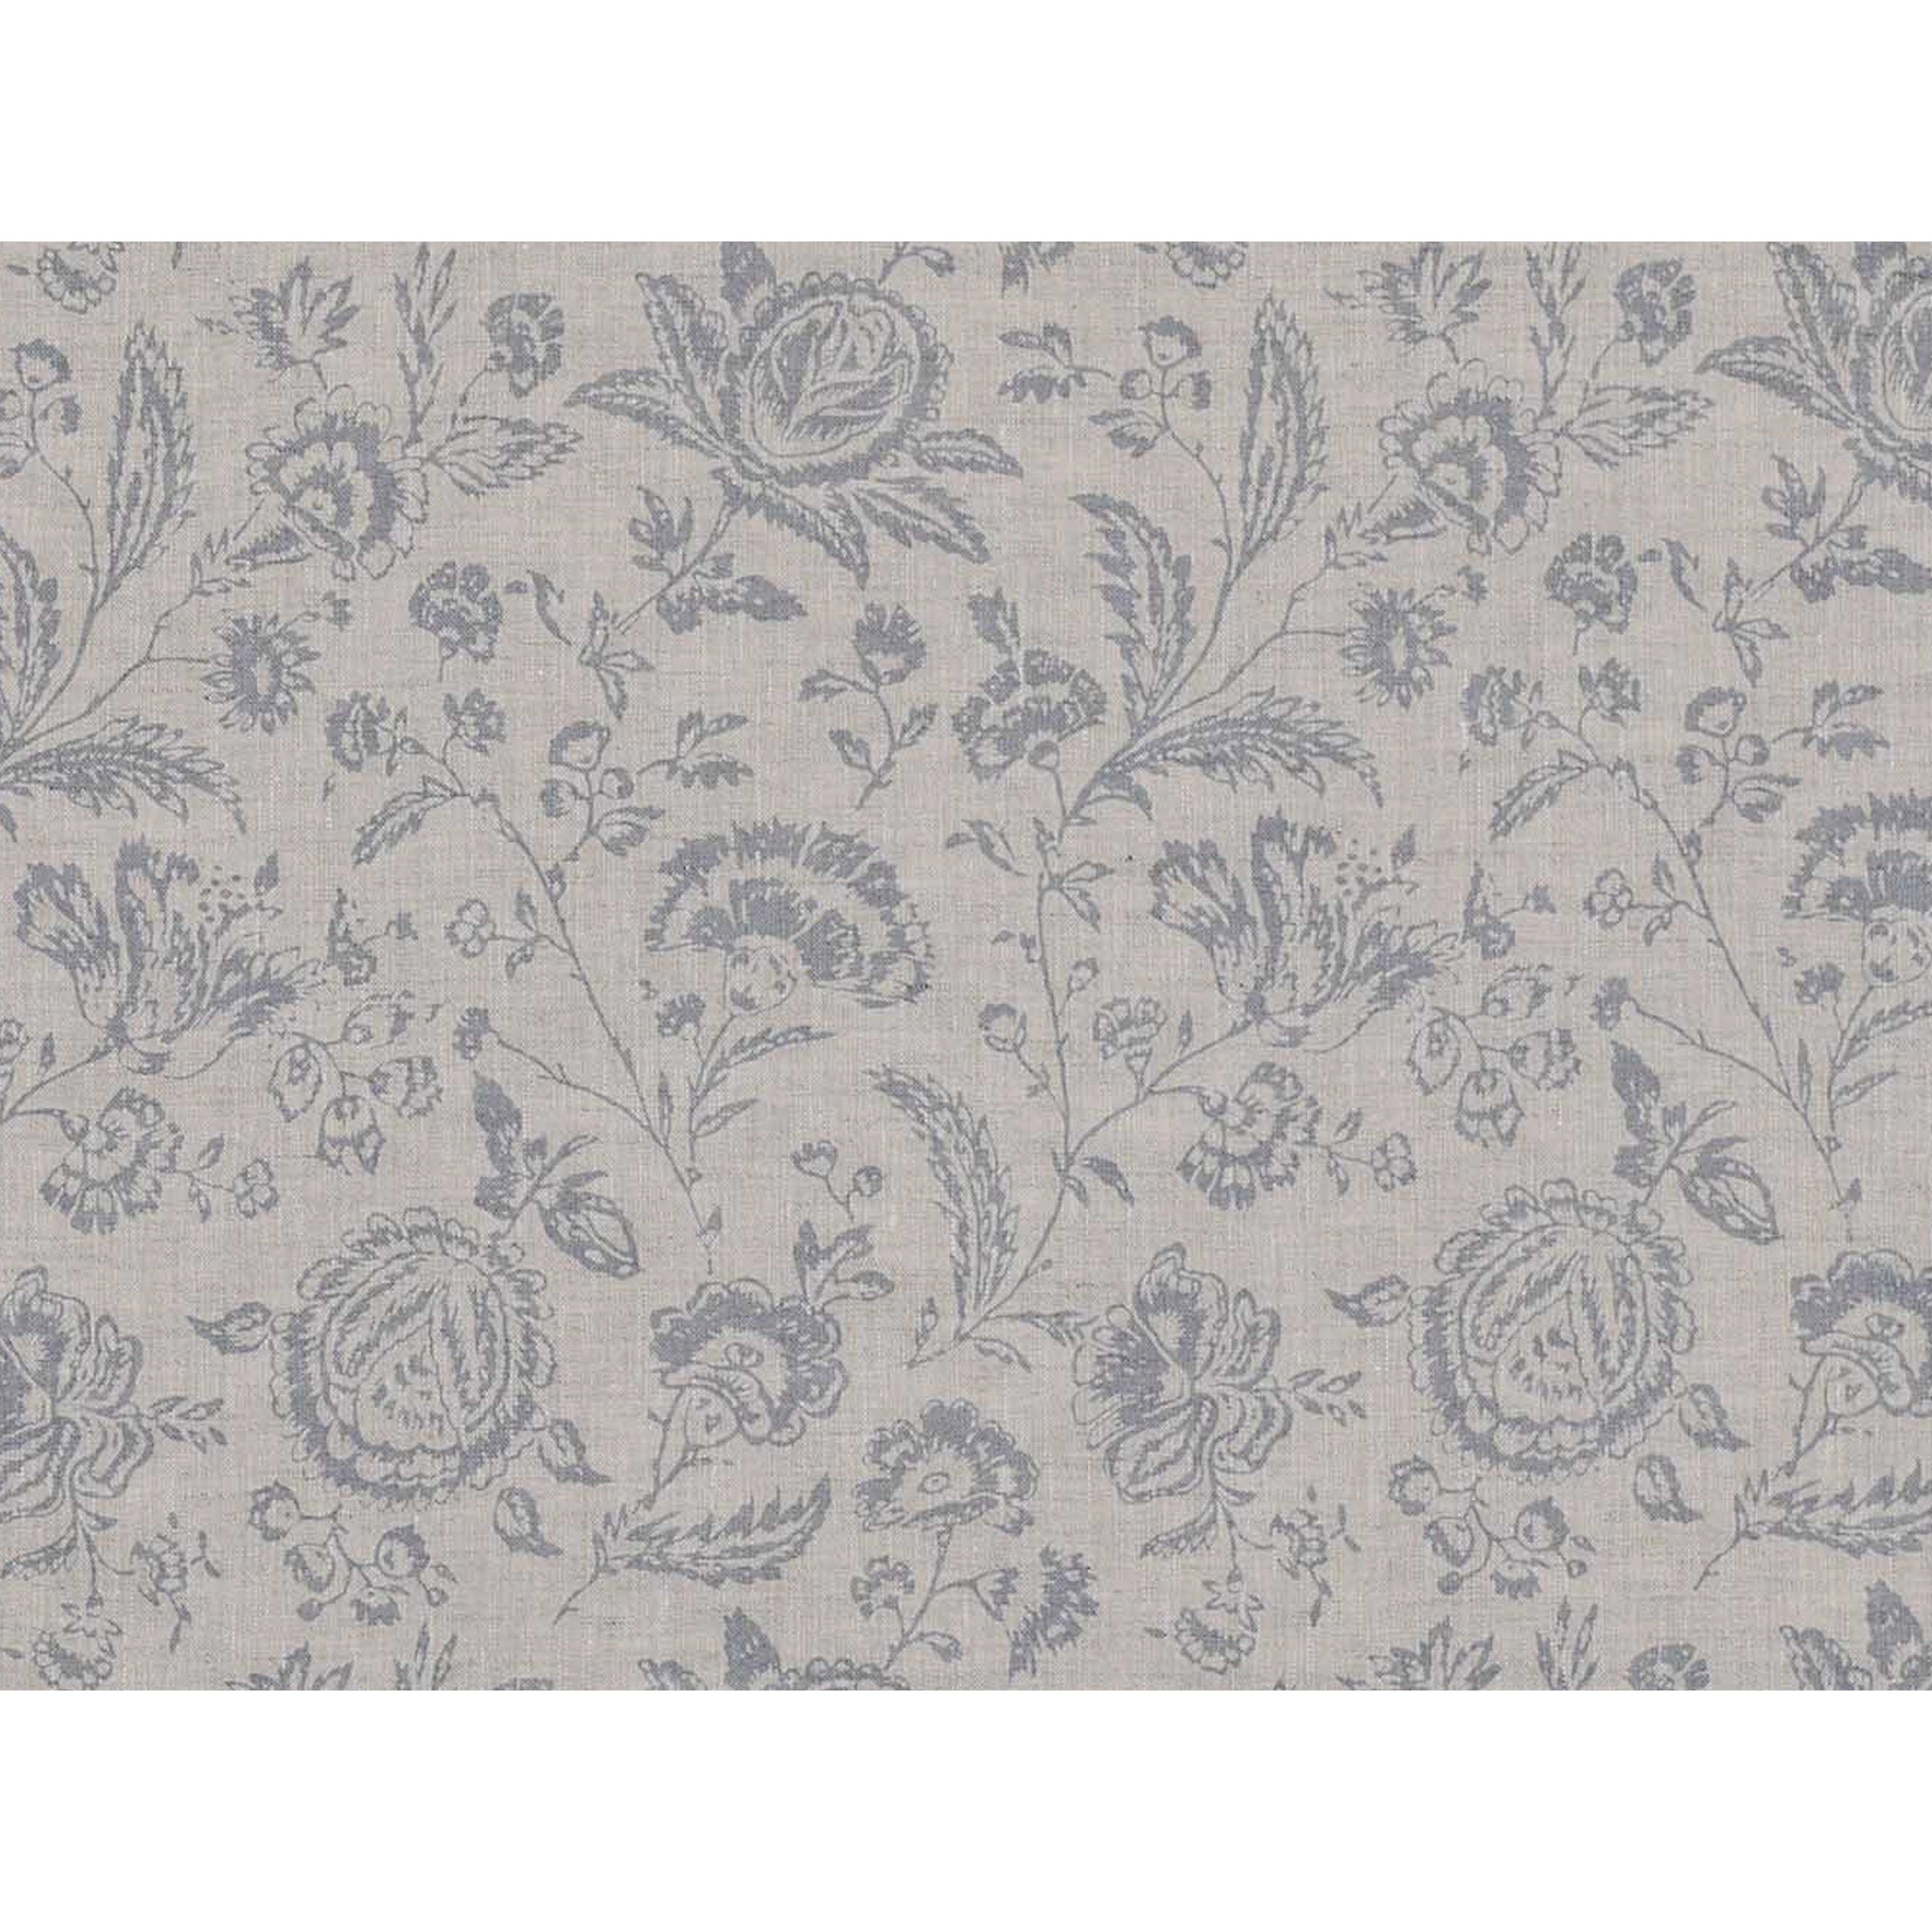 Cabbages and Roses Provence Toile Blue